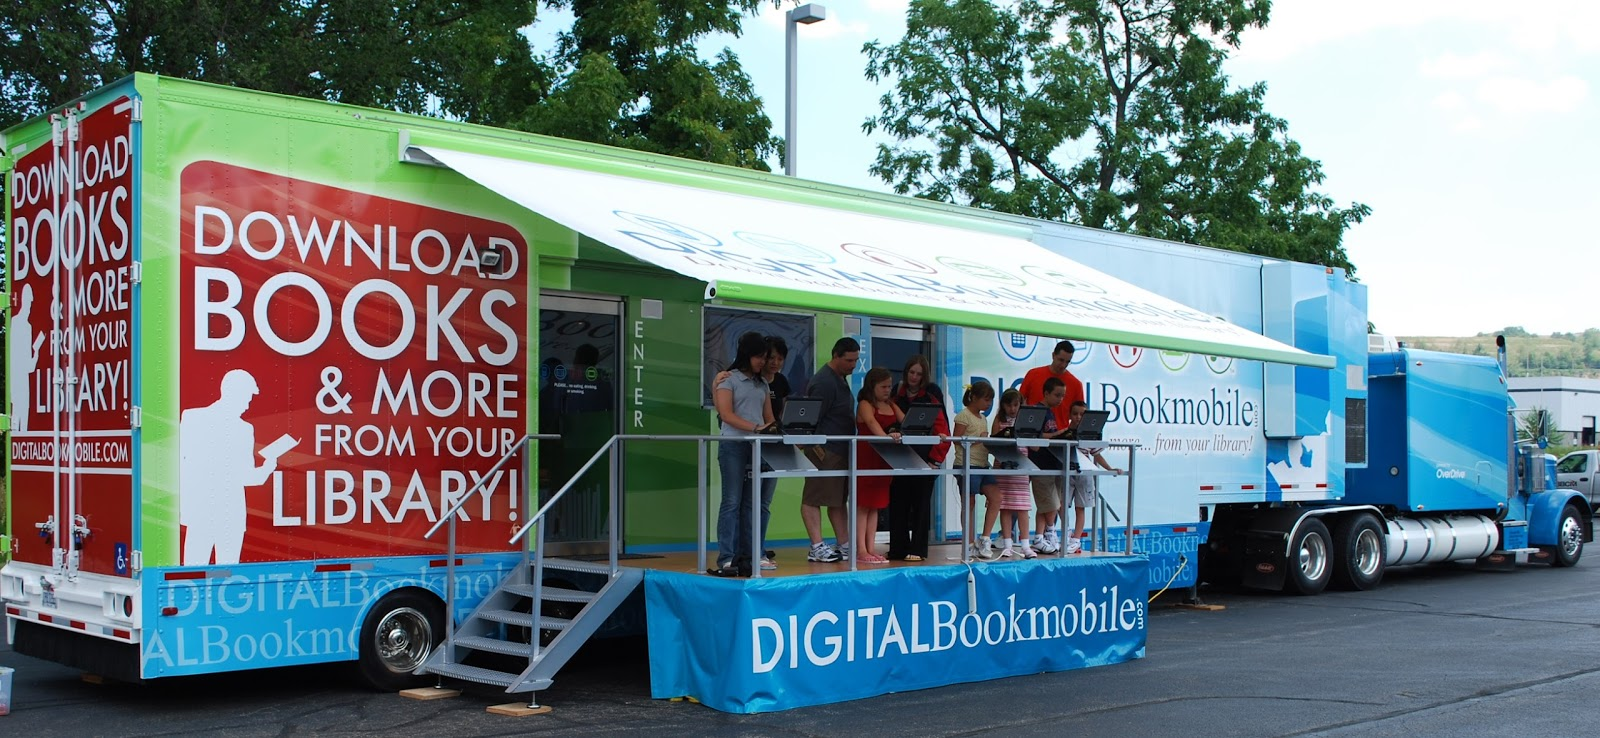 photo of digital bookmobile